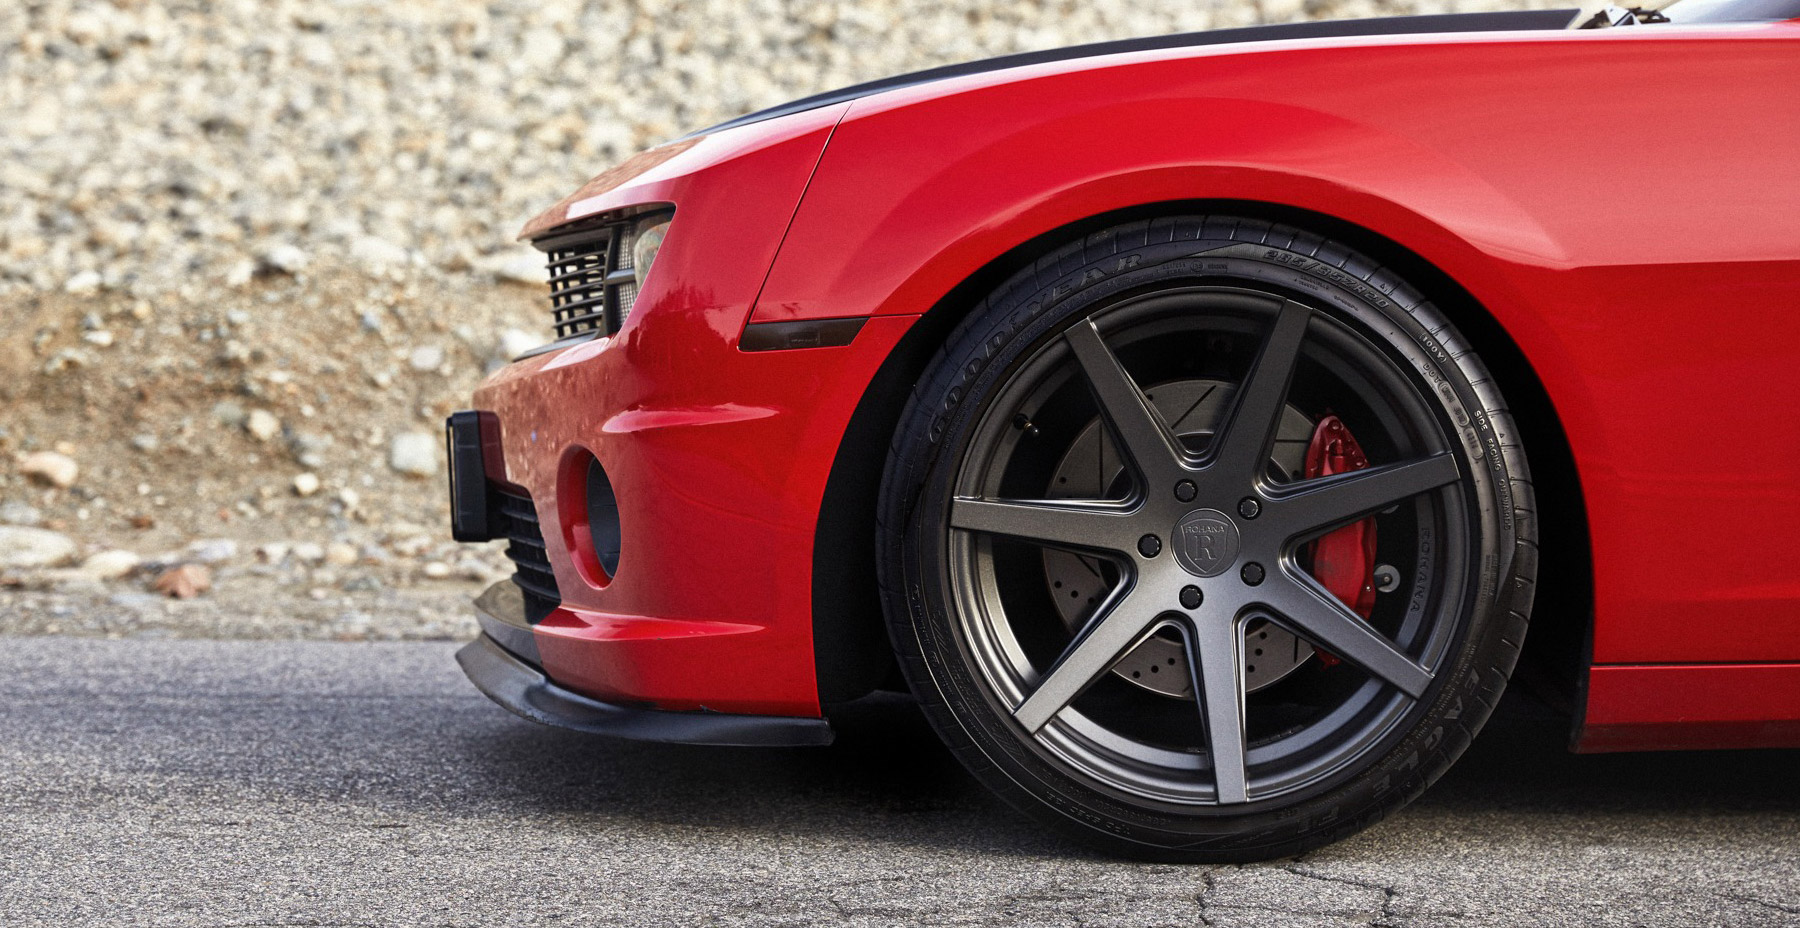 Red Chevrolet Camaro SS x Rohana RC7 Wheels (Finished in Matte Graphite)